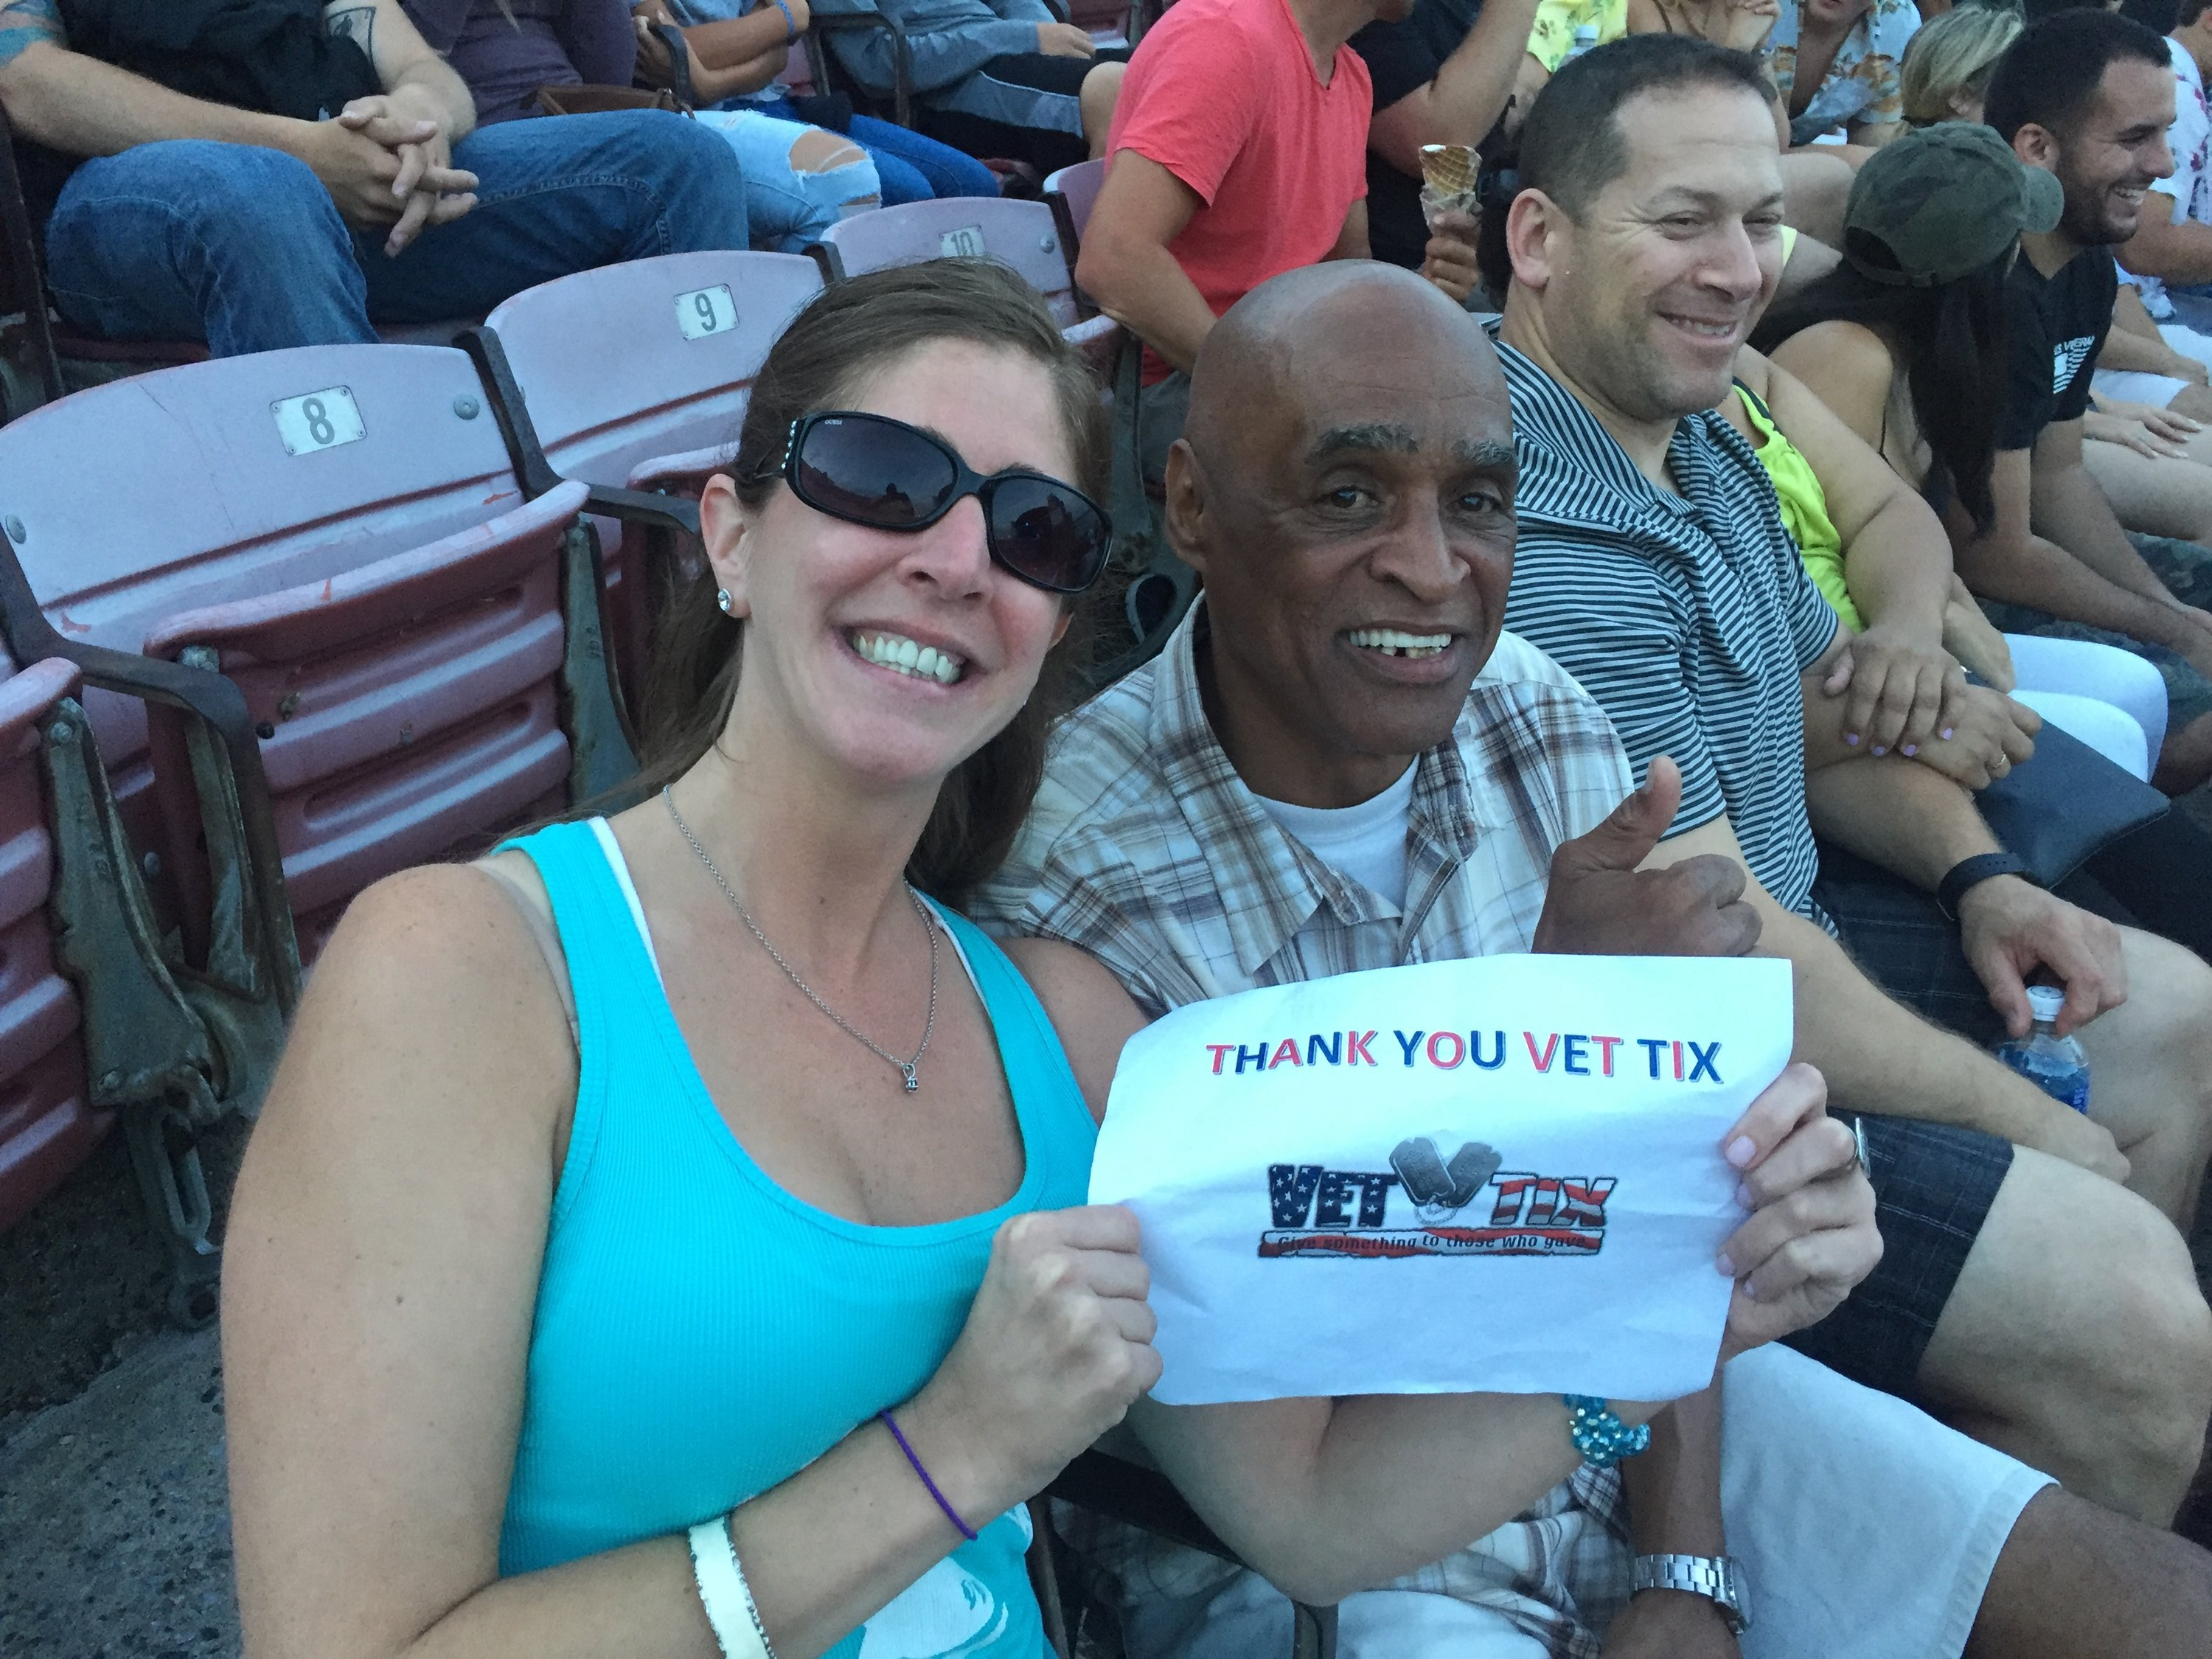 Event Tickets for Currently Serving Military, Veterans and their Families